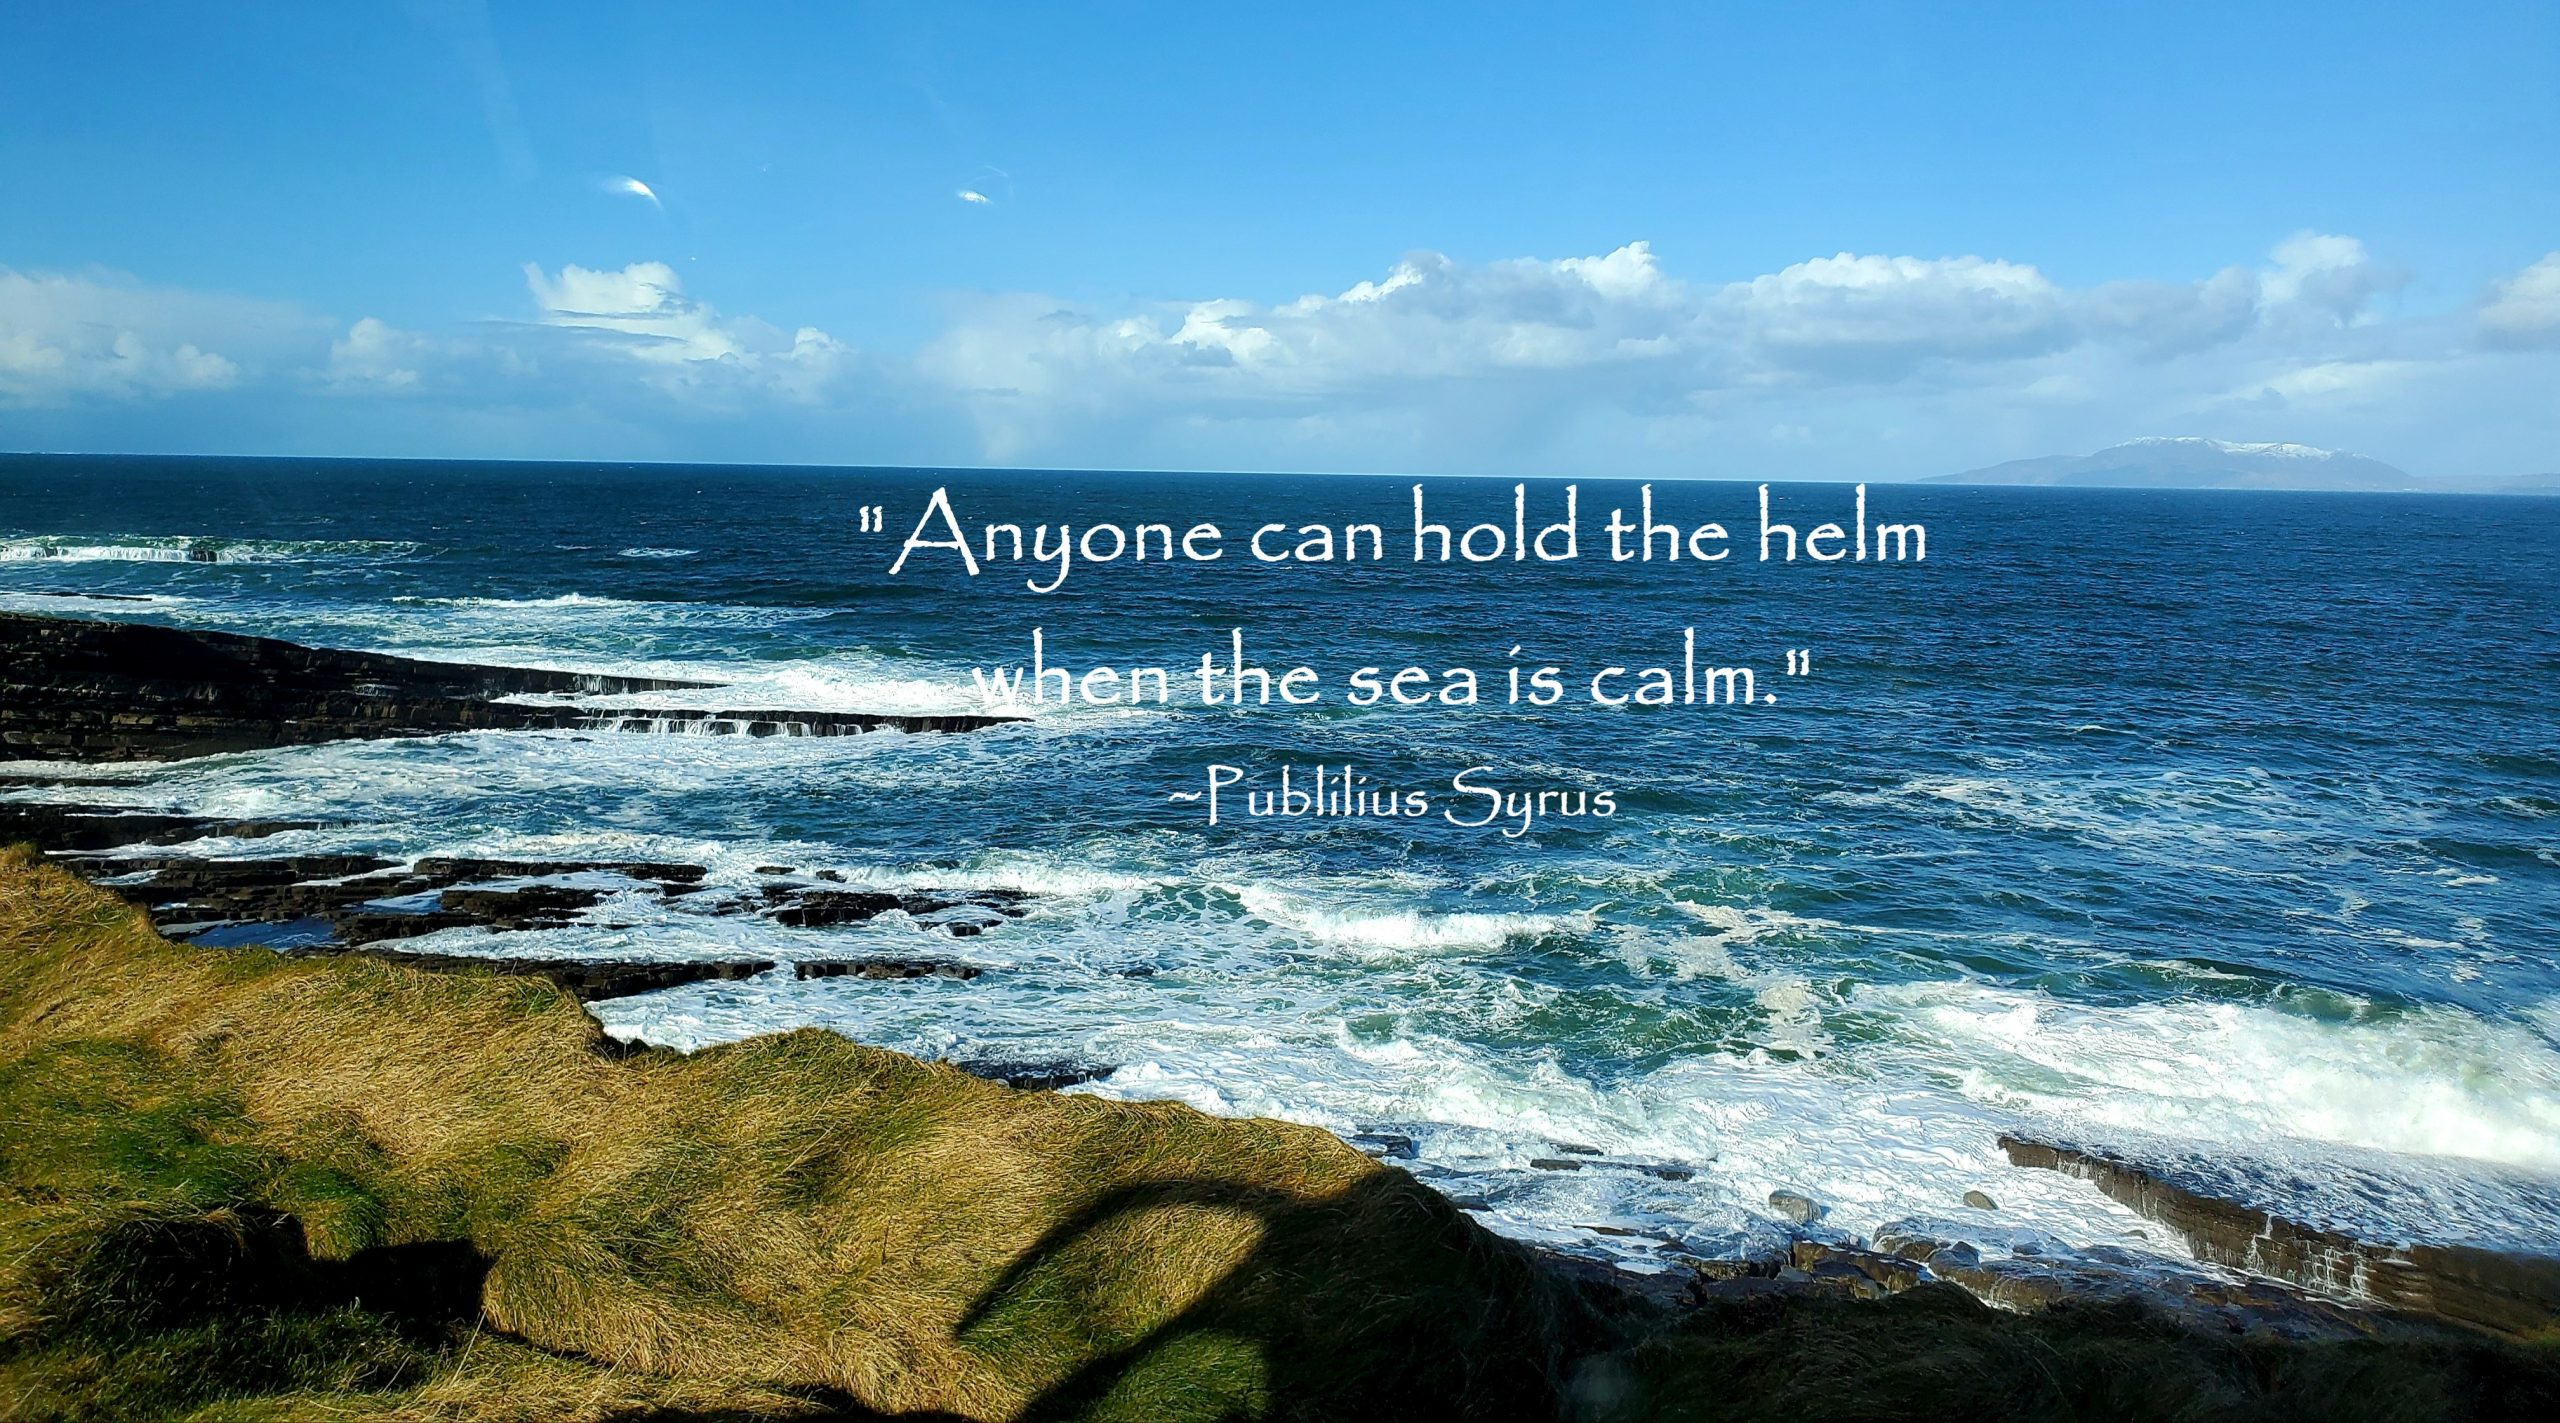 Irish sea with quote Anyone can hold the helm when the sea is calm by Publilius Syrus